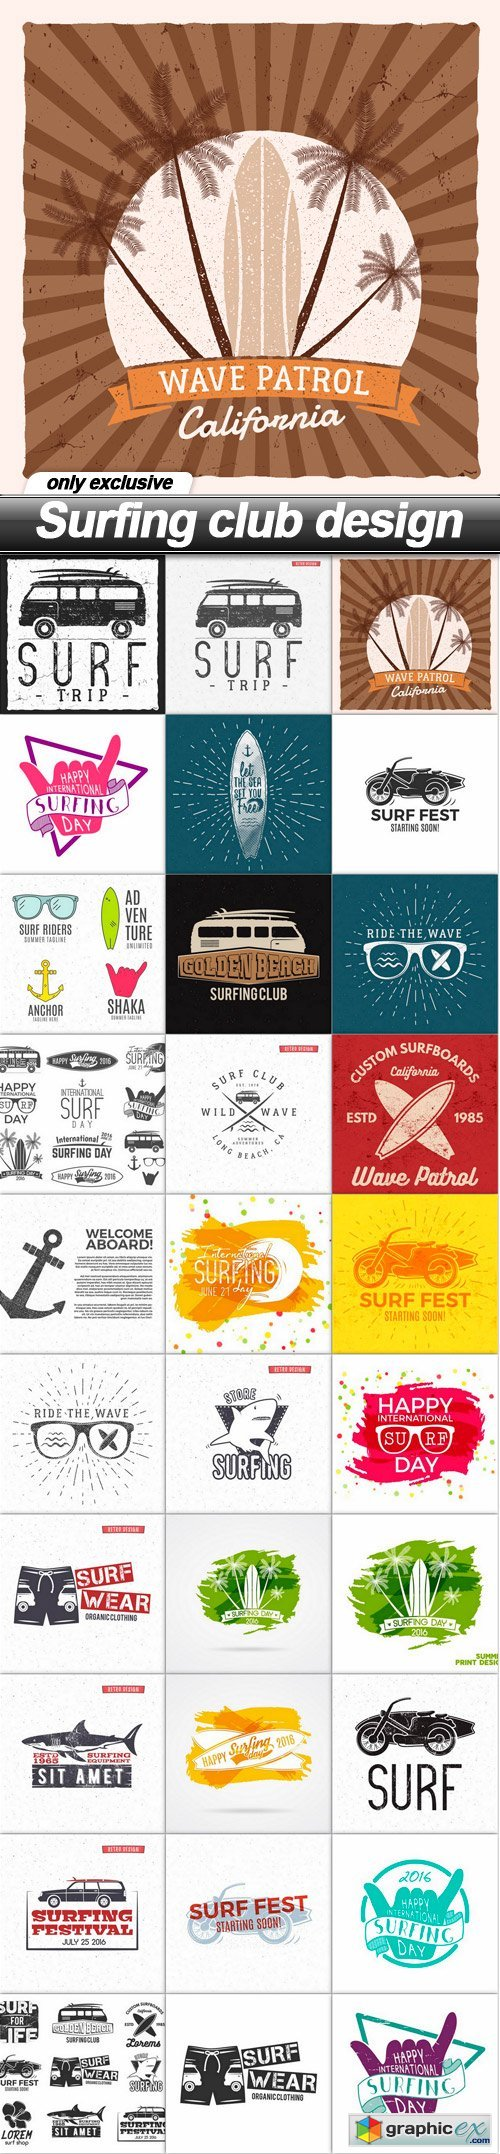 Surfing club design - 30 EPS